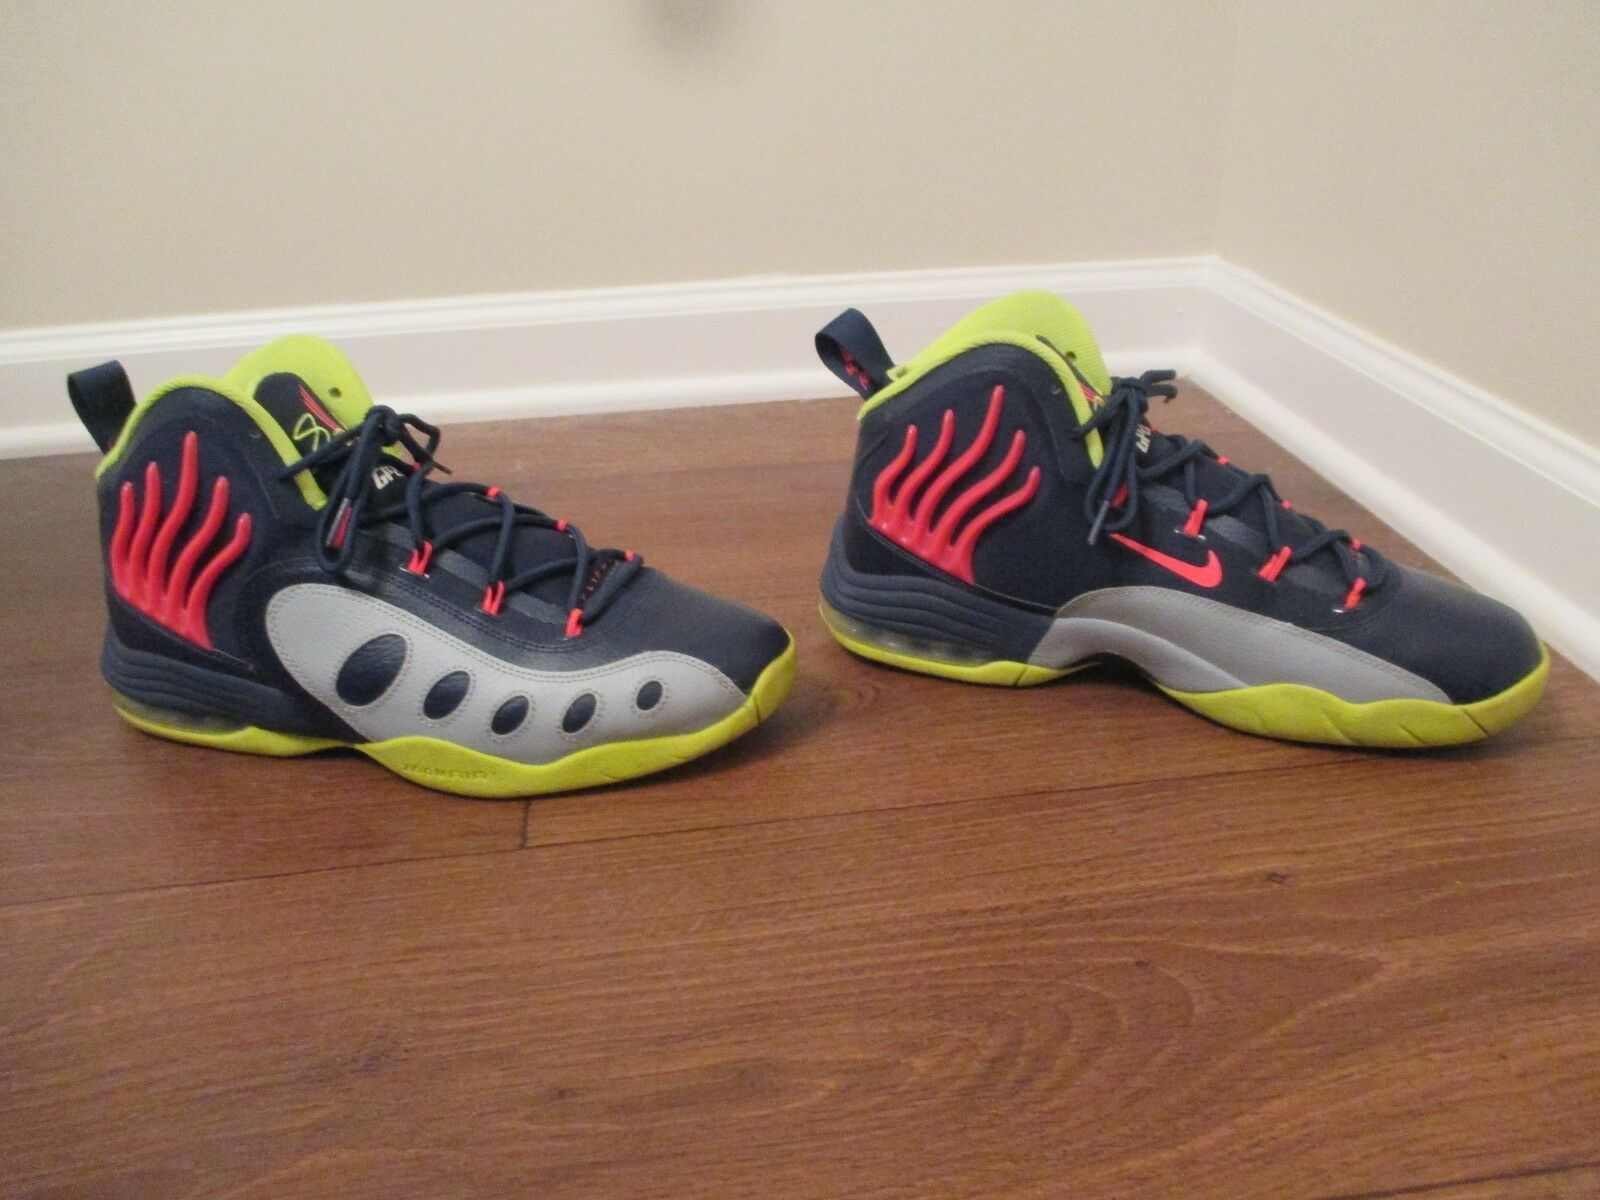 Used Worn Size 11.5 Nike Sonic Flight Shoes Midnight Navy, Hyper Punch, Gray